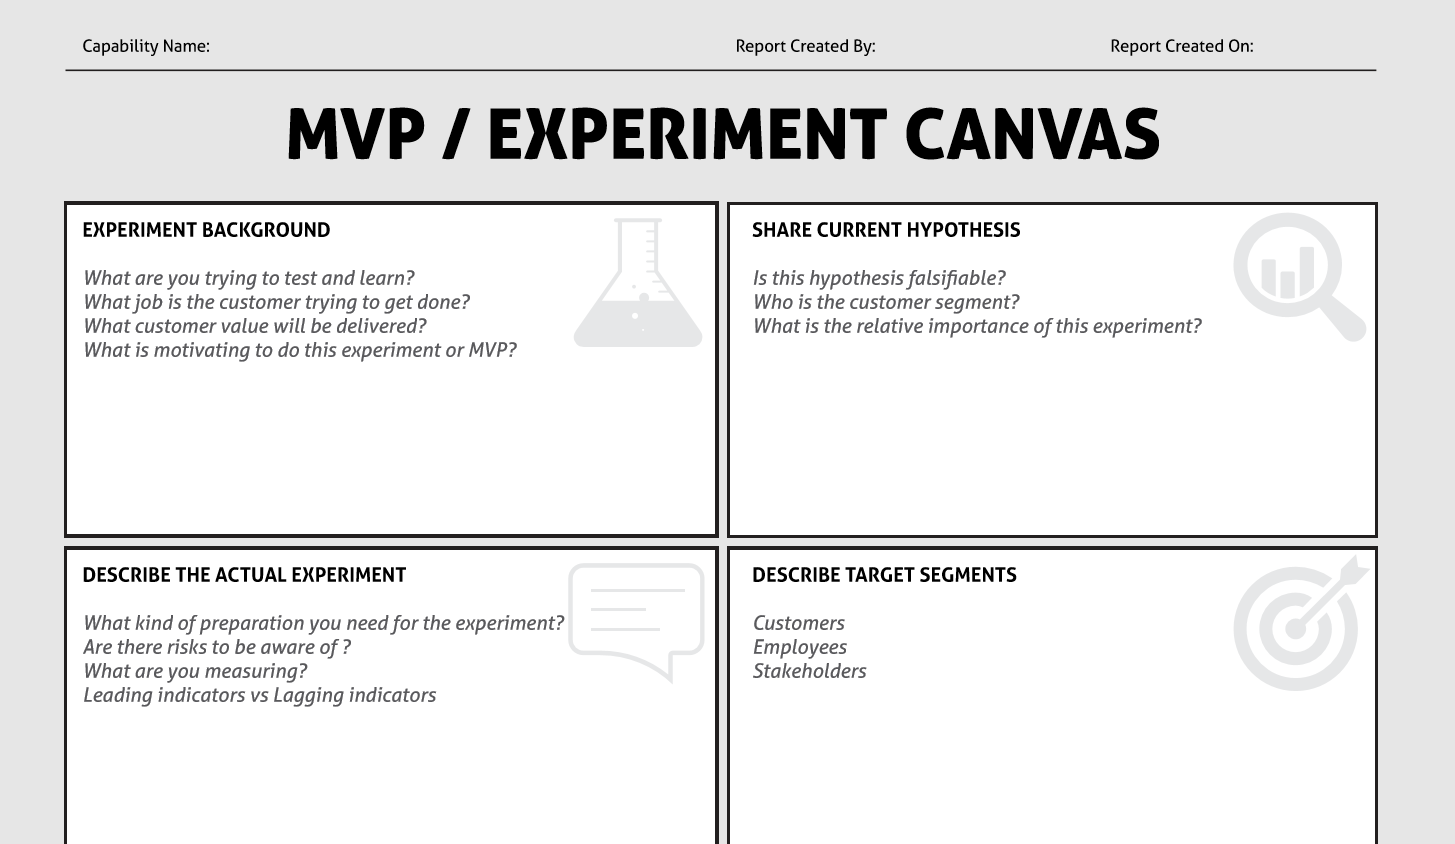 The MVP Experiment Canvas